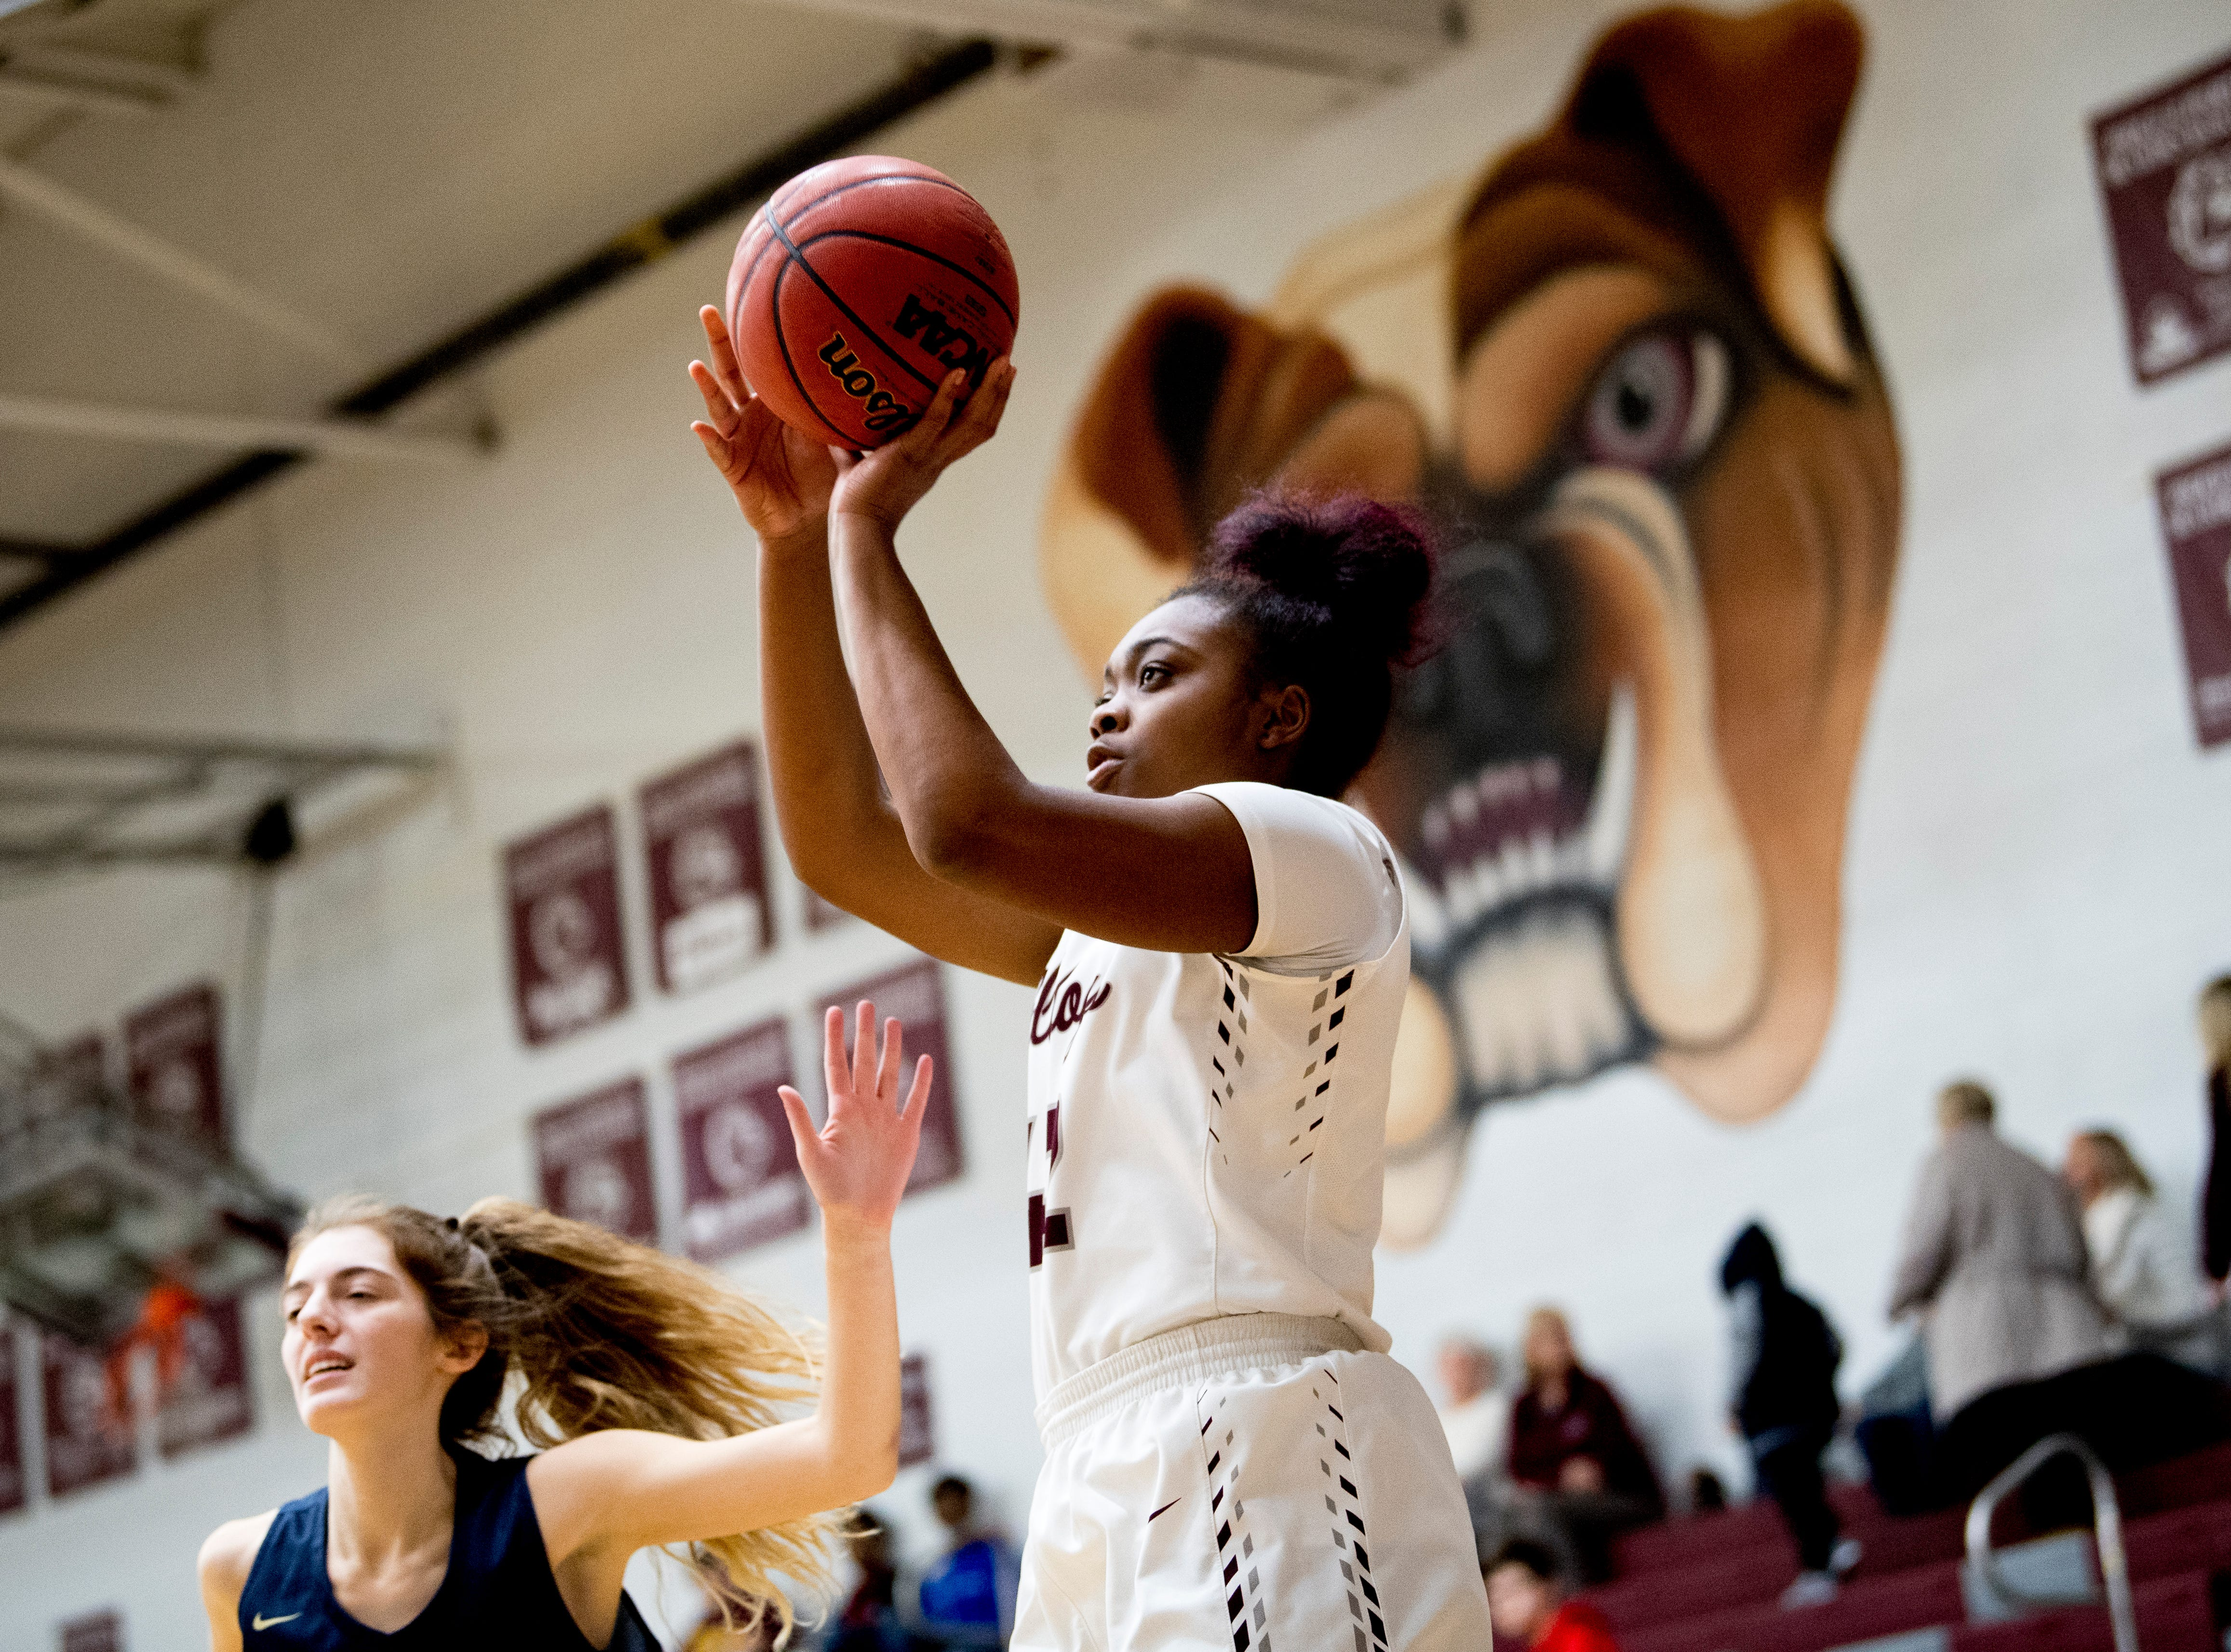 Bearden's Jakhyia Davis (42) shoots the ball during a game between Bearden and Catholic at Bearden High School in Knoxville, Tennessee on Thursday, January 10, 2019.